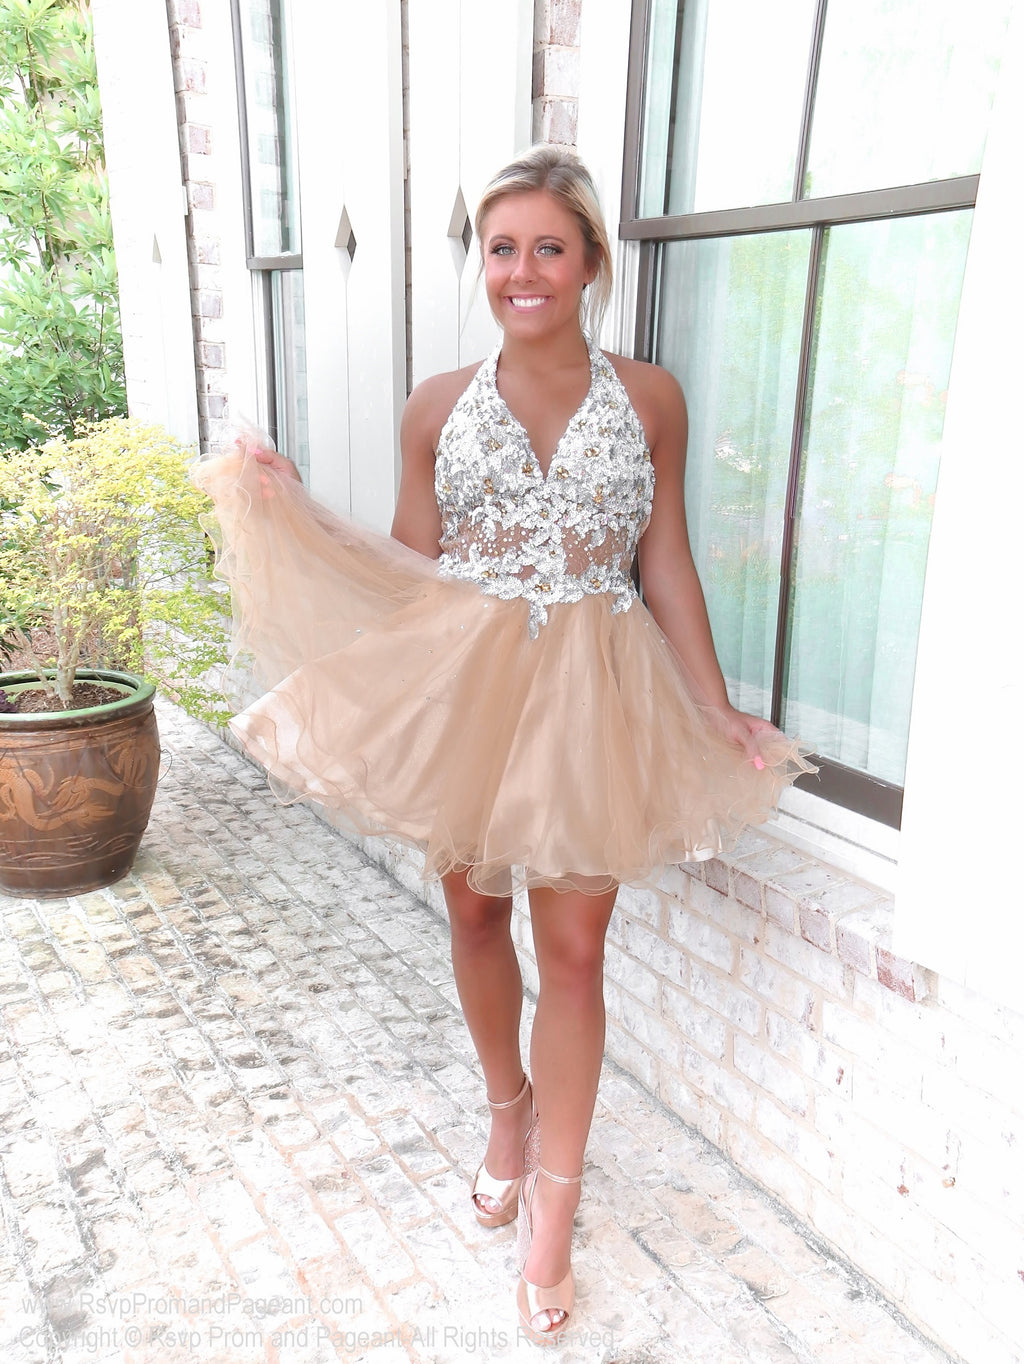 Pretty girl in a Super Sweet Short Homecoming Dress with Silver Halter Top at Rsvp Prom and Pageant, the best prom dress store, Atlanta, Georgia